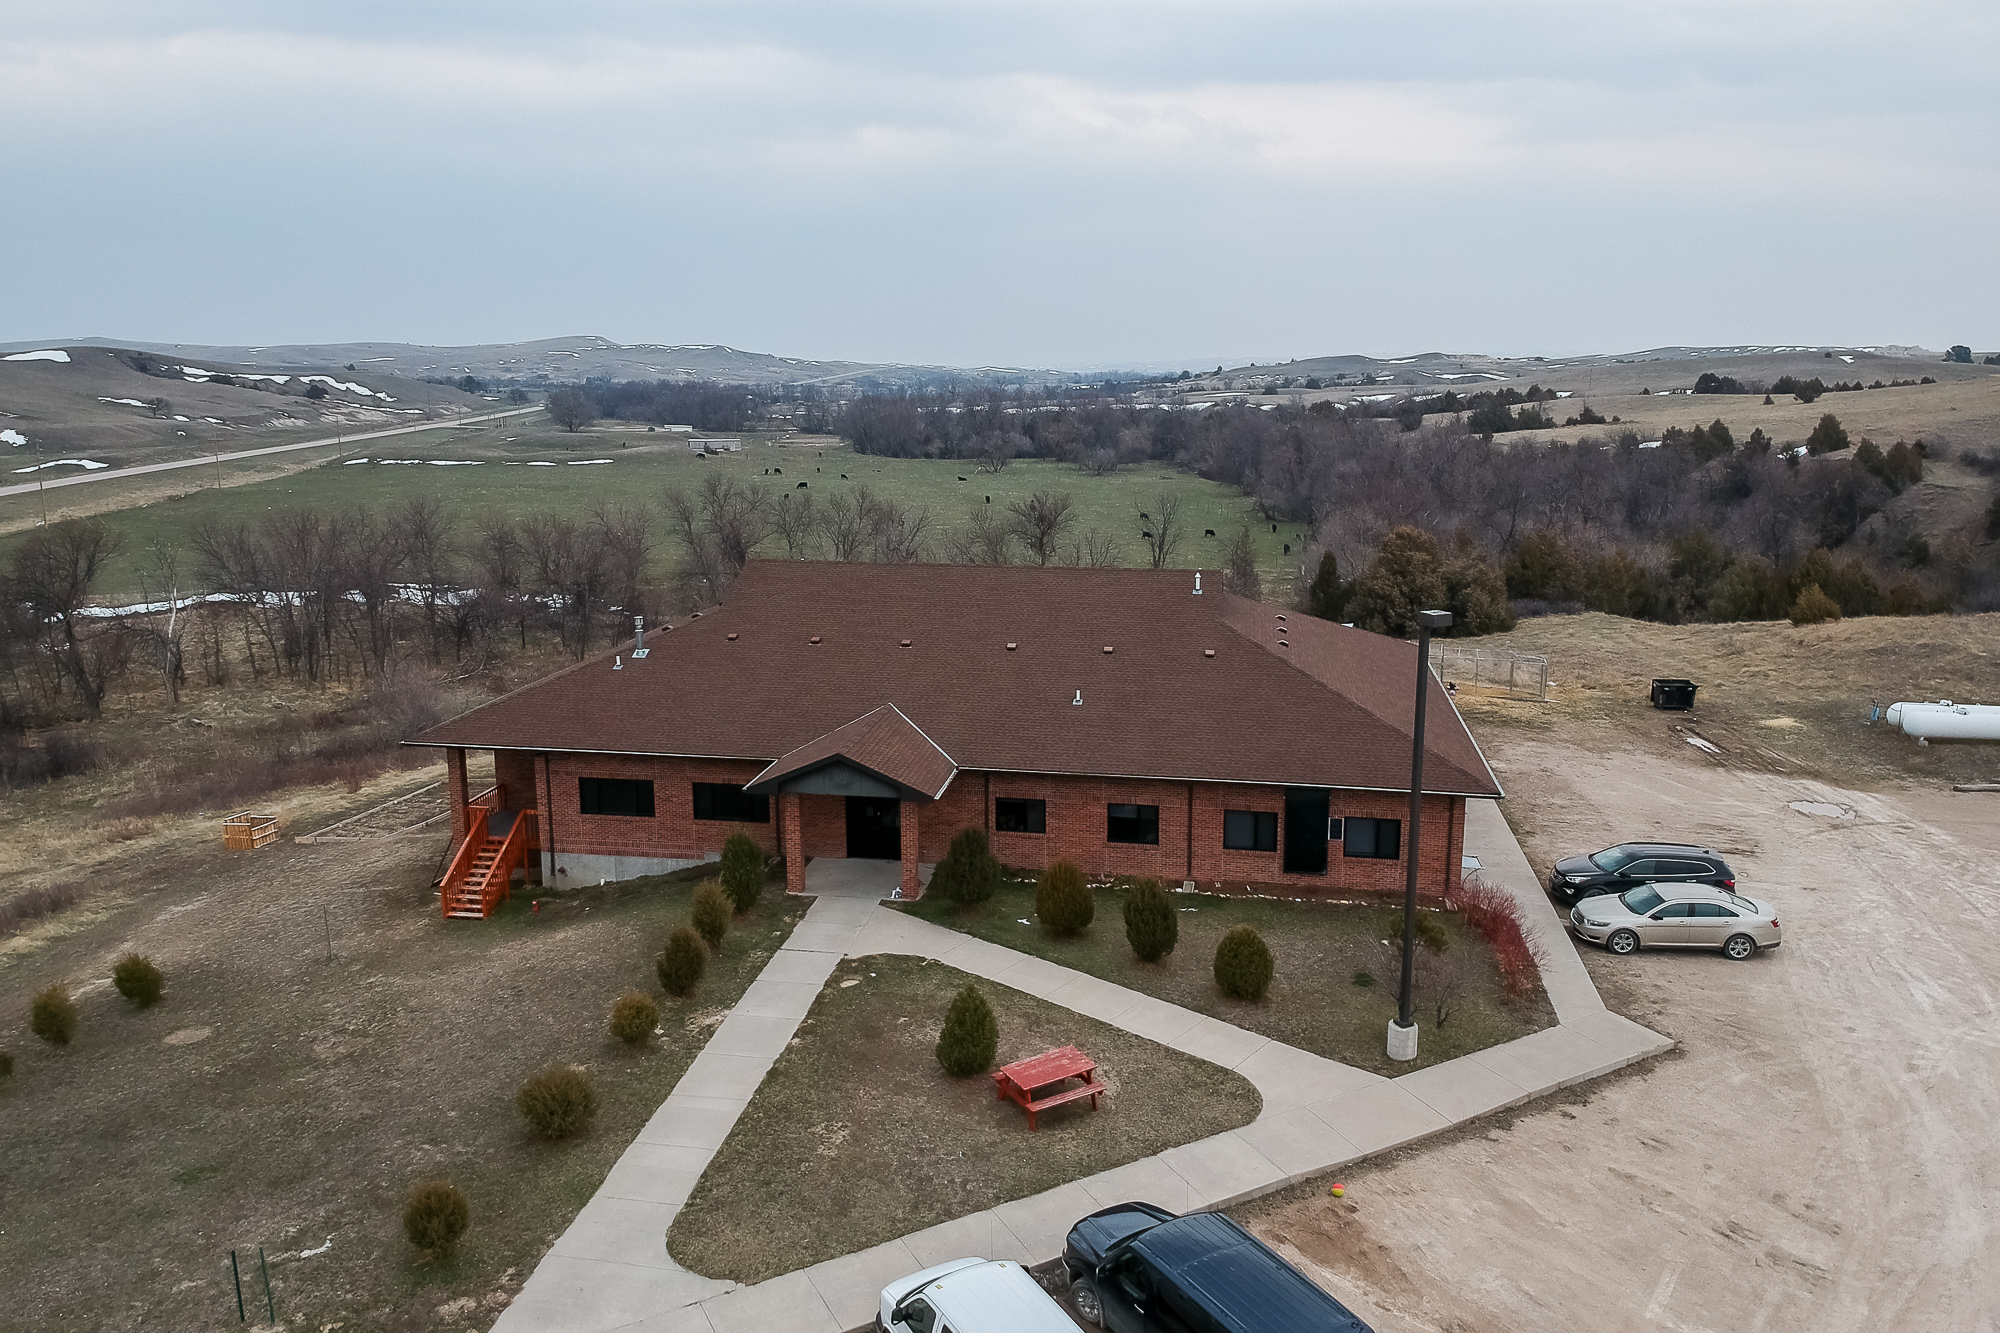 web-PineRidgeGirlsSchool-DJI_0376.jpg